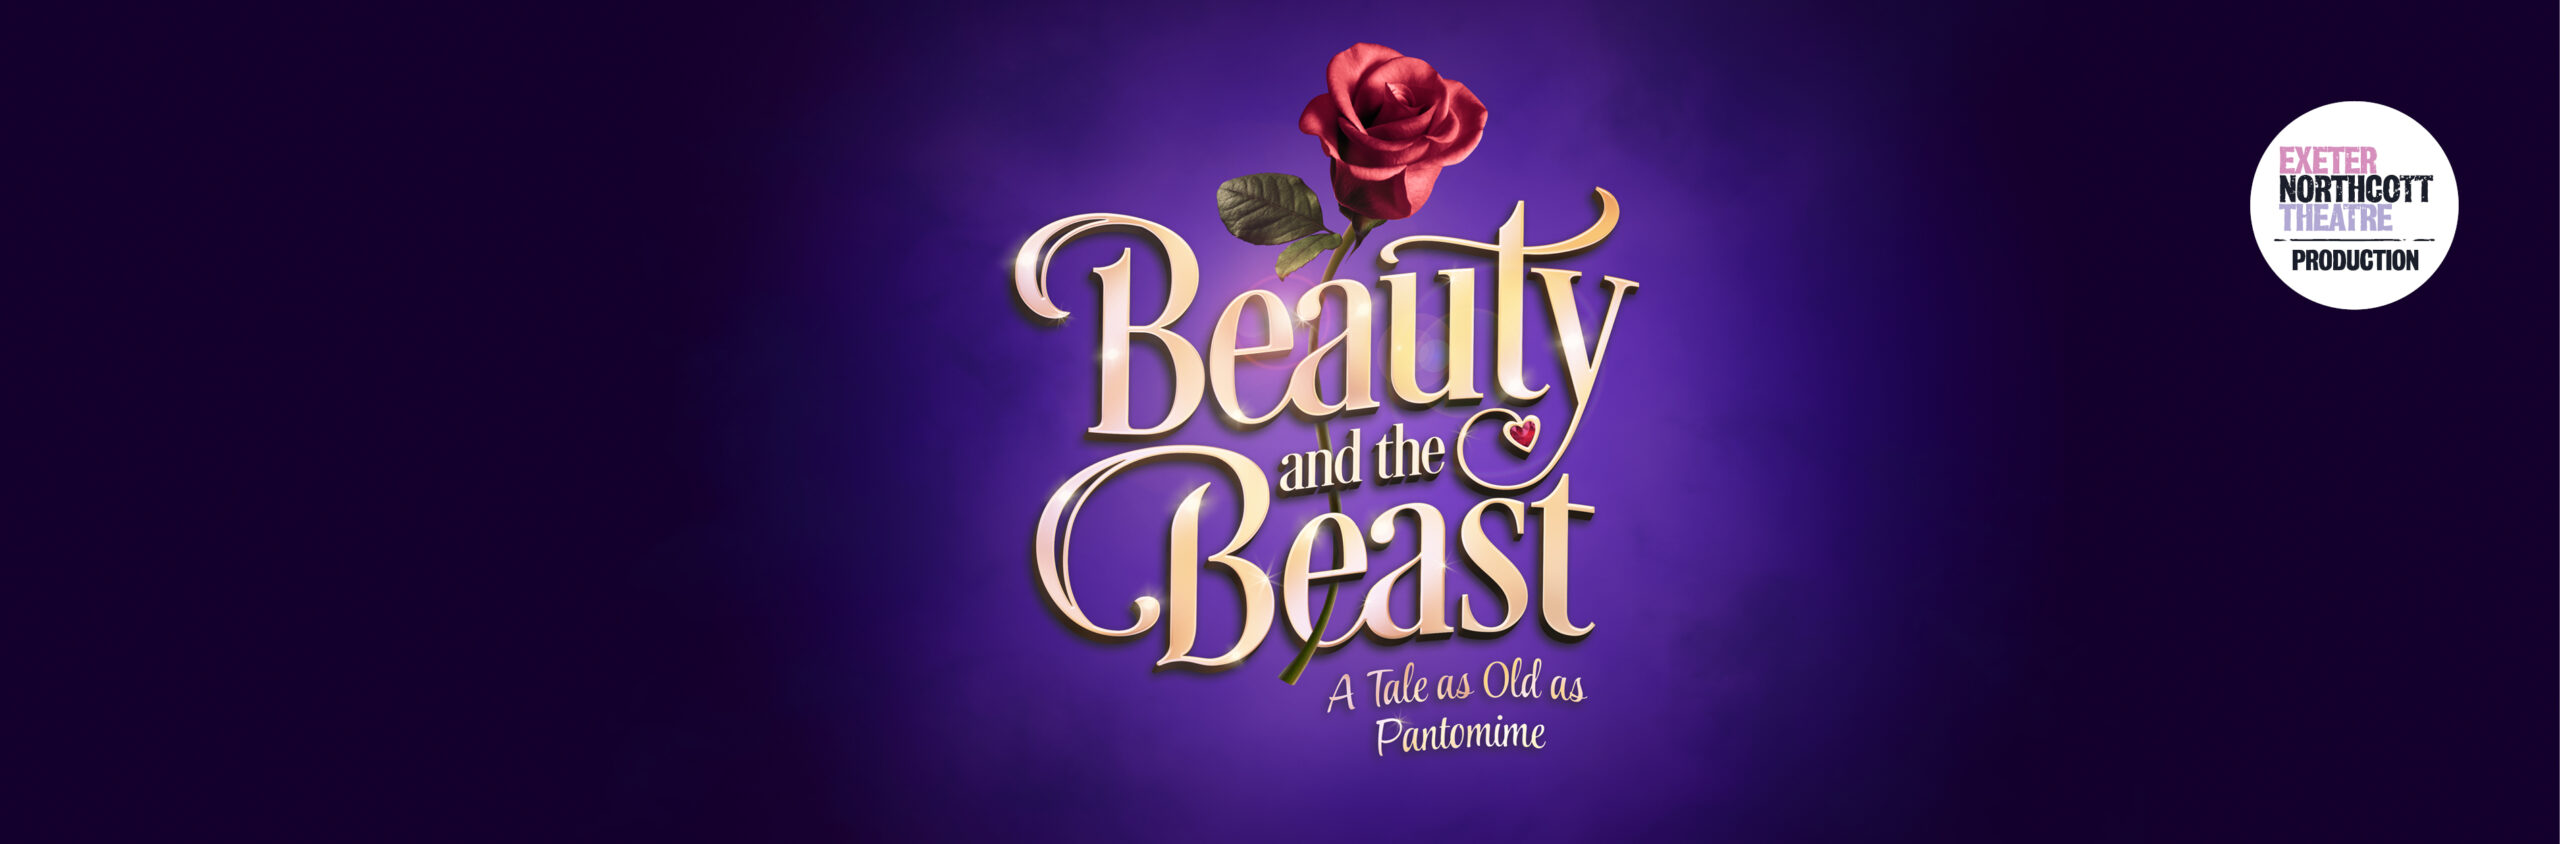 Beauty and the Beast promotional poster